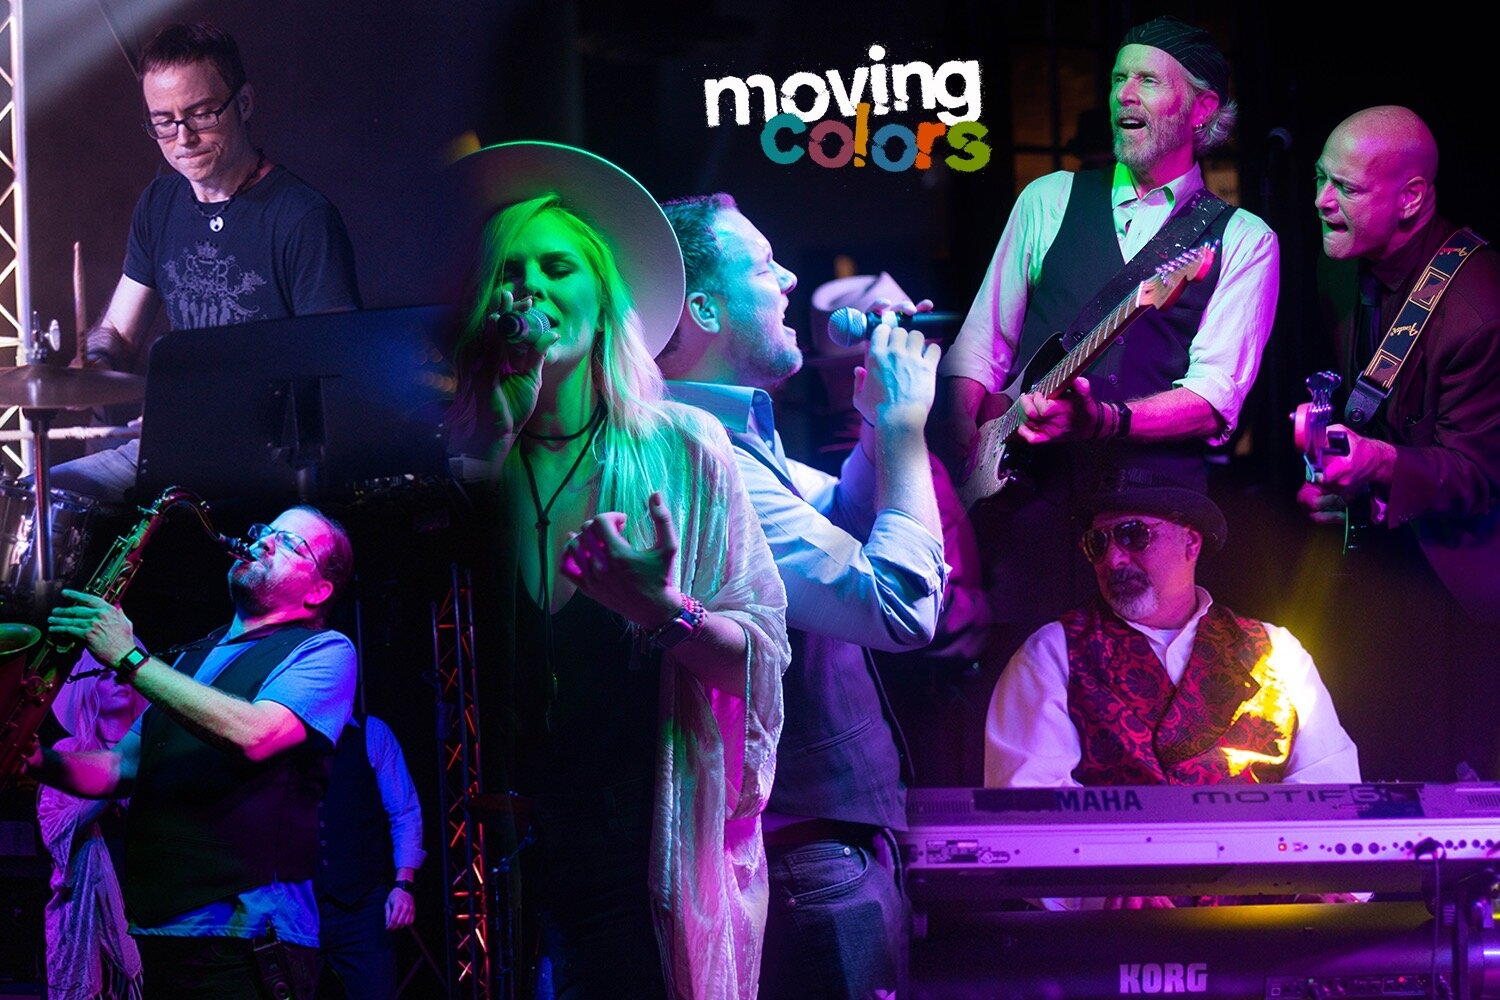 Moving Colors Band - Montage of people performing with instruments and singing